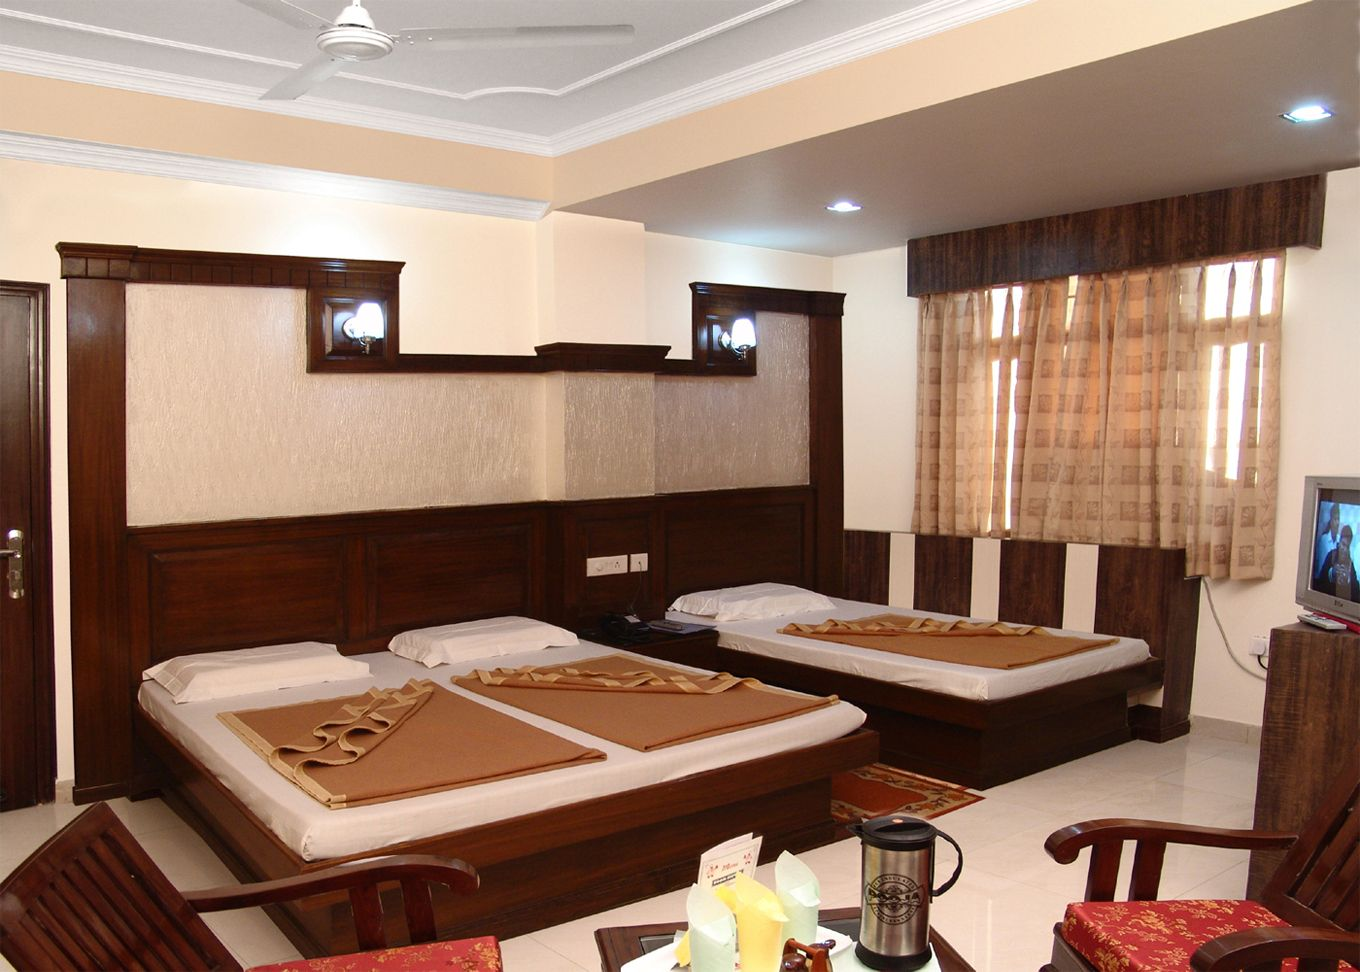 Budget 3 star hotels in new delhi now book 3 star hotel in delhi near new delhi airport in your budget and enjoy your stay with new delhi three star